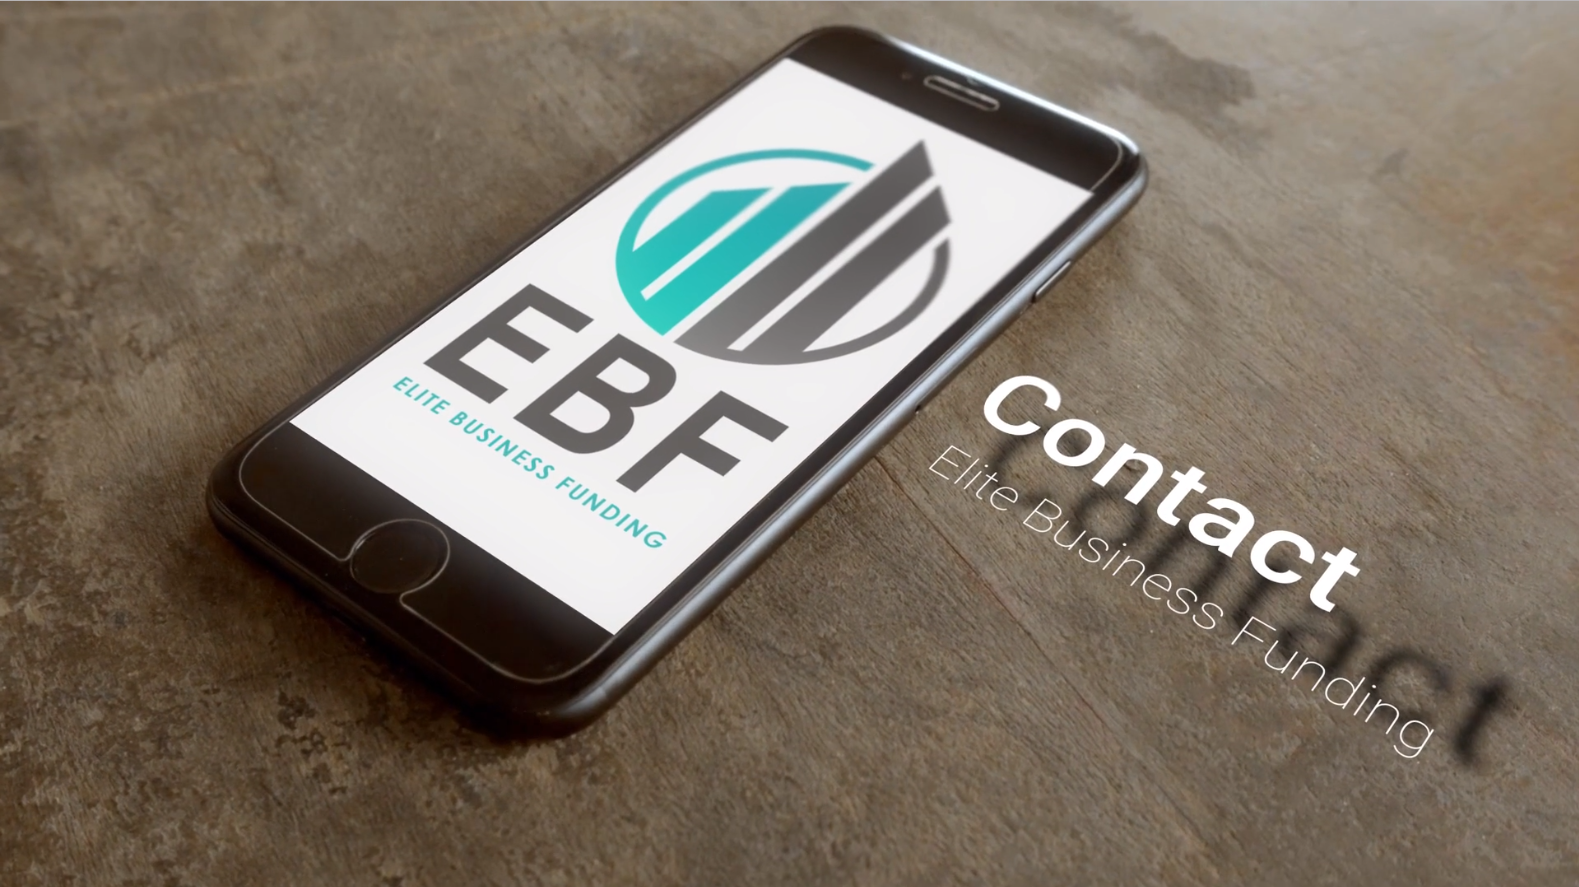 Contact Elite Business Funding on your mobile